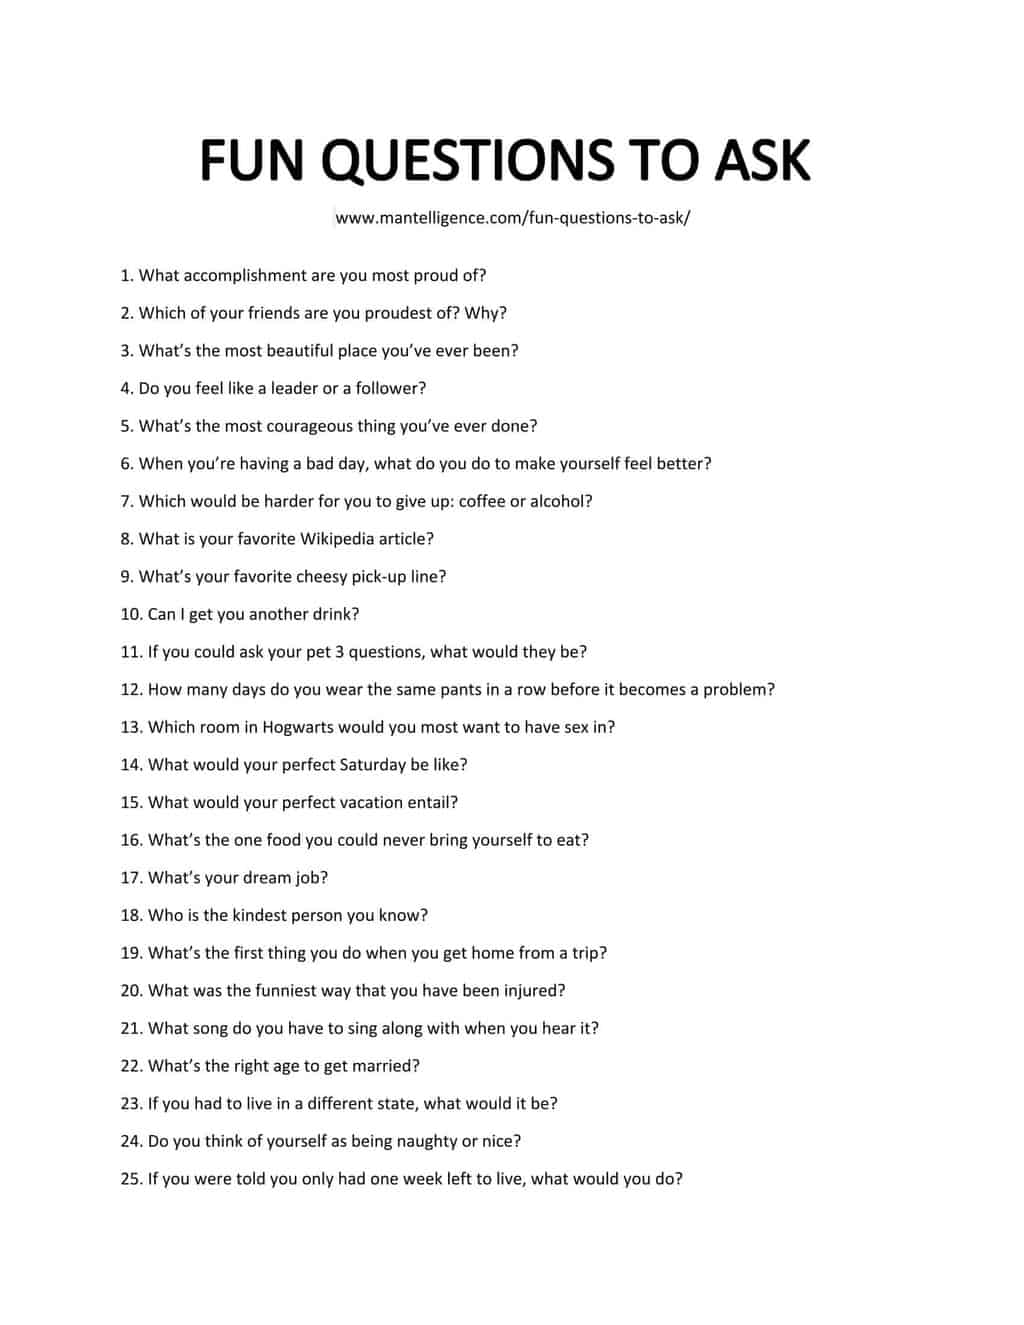 icebreaker questions for adults - List of Icebreaker Questions For Adults